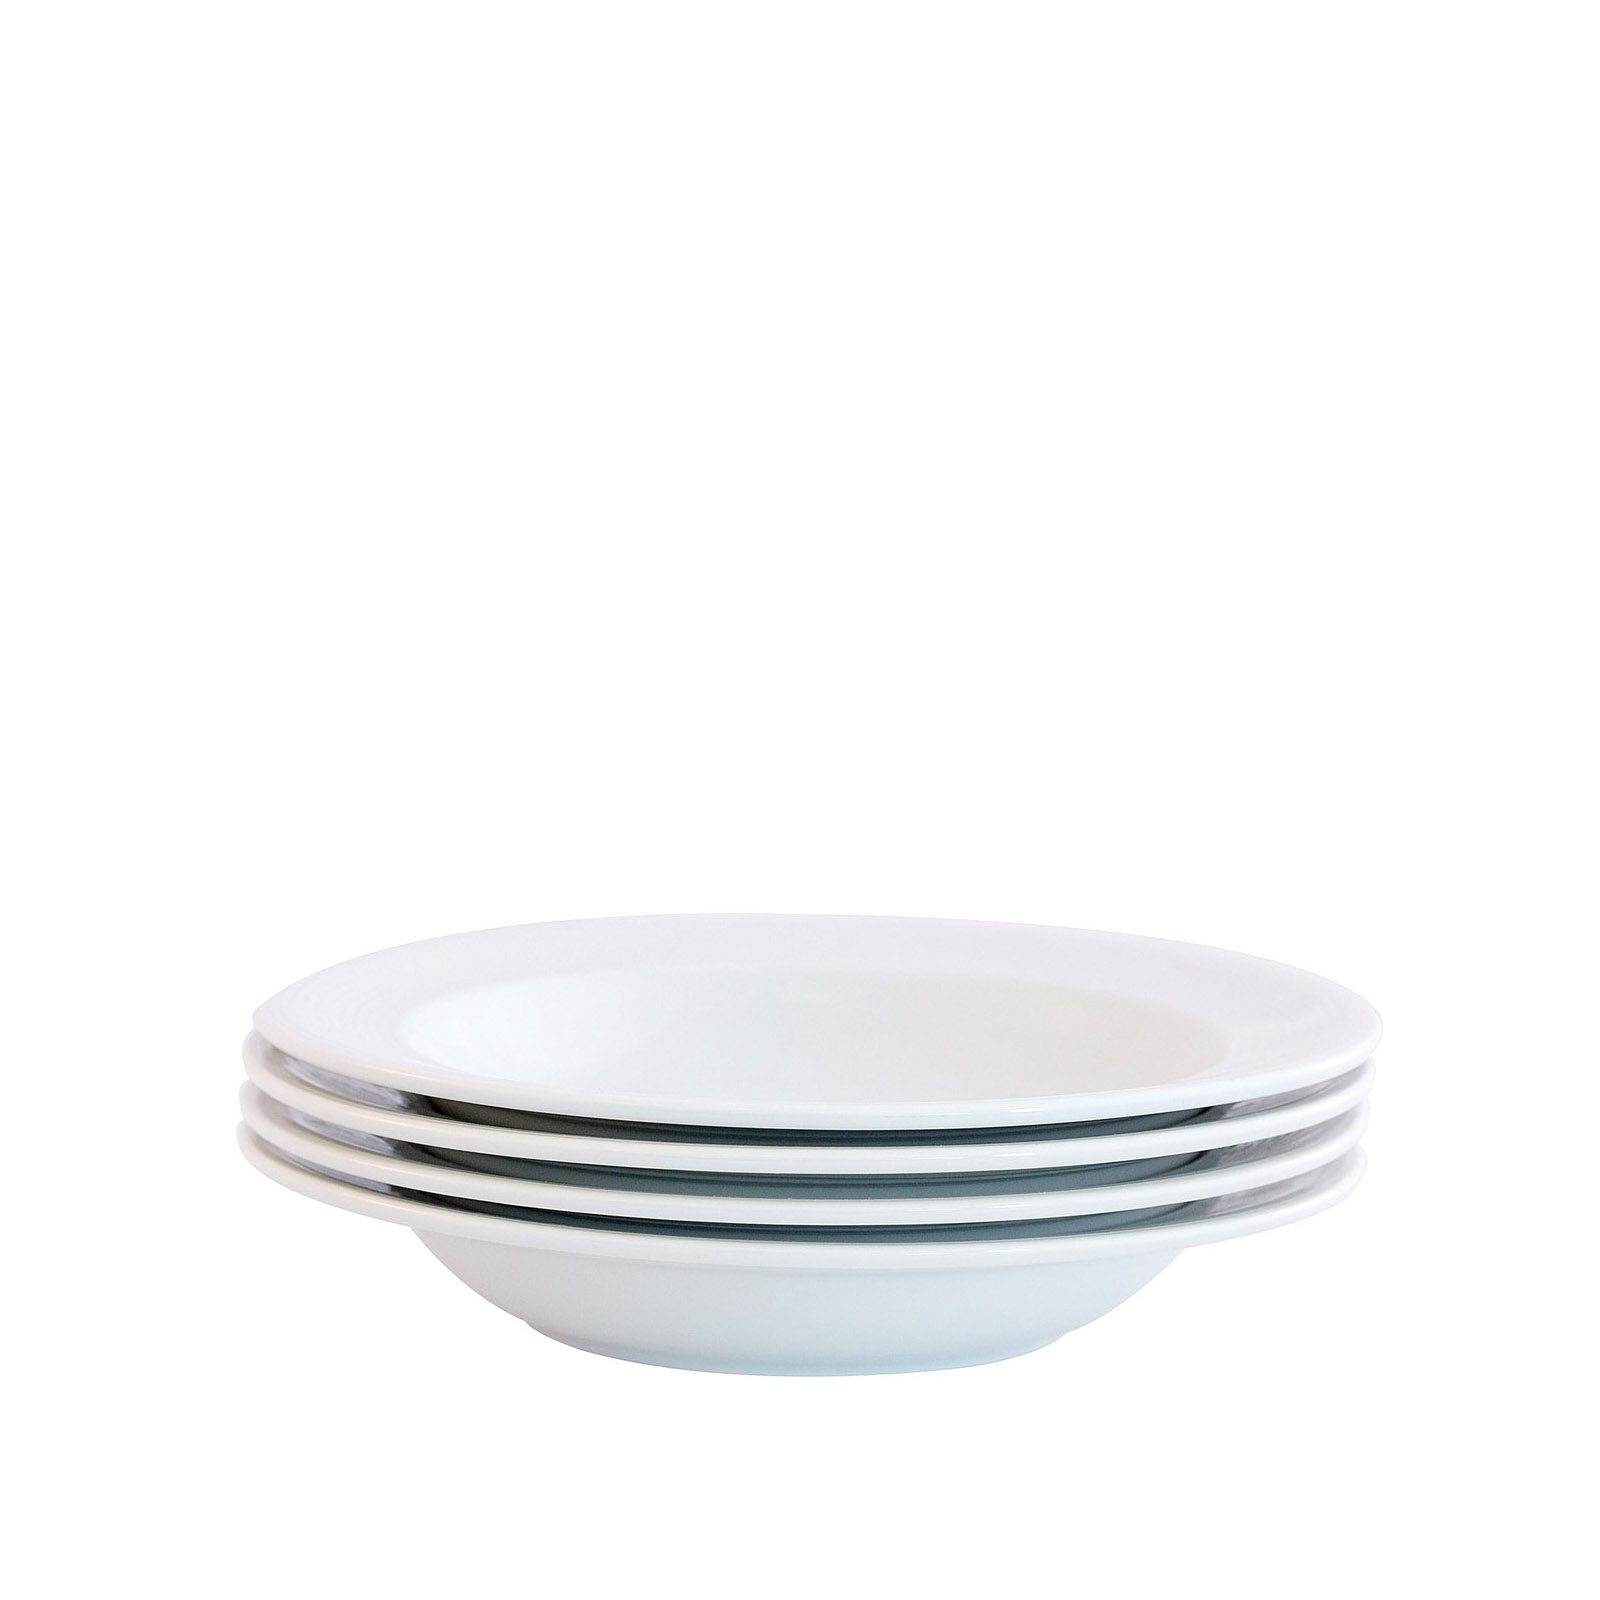 Bambeco Brasserie Porcelain Soup Bowl Case of 4 4 Count by Bambeco